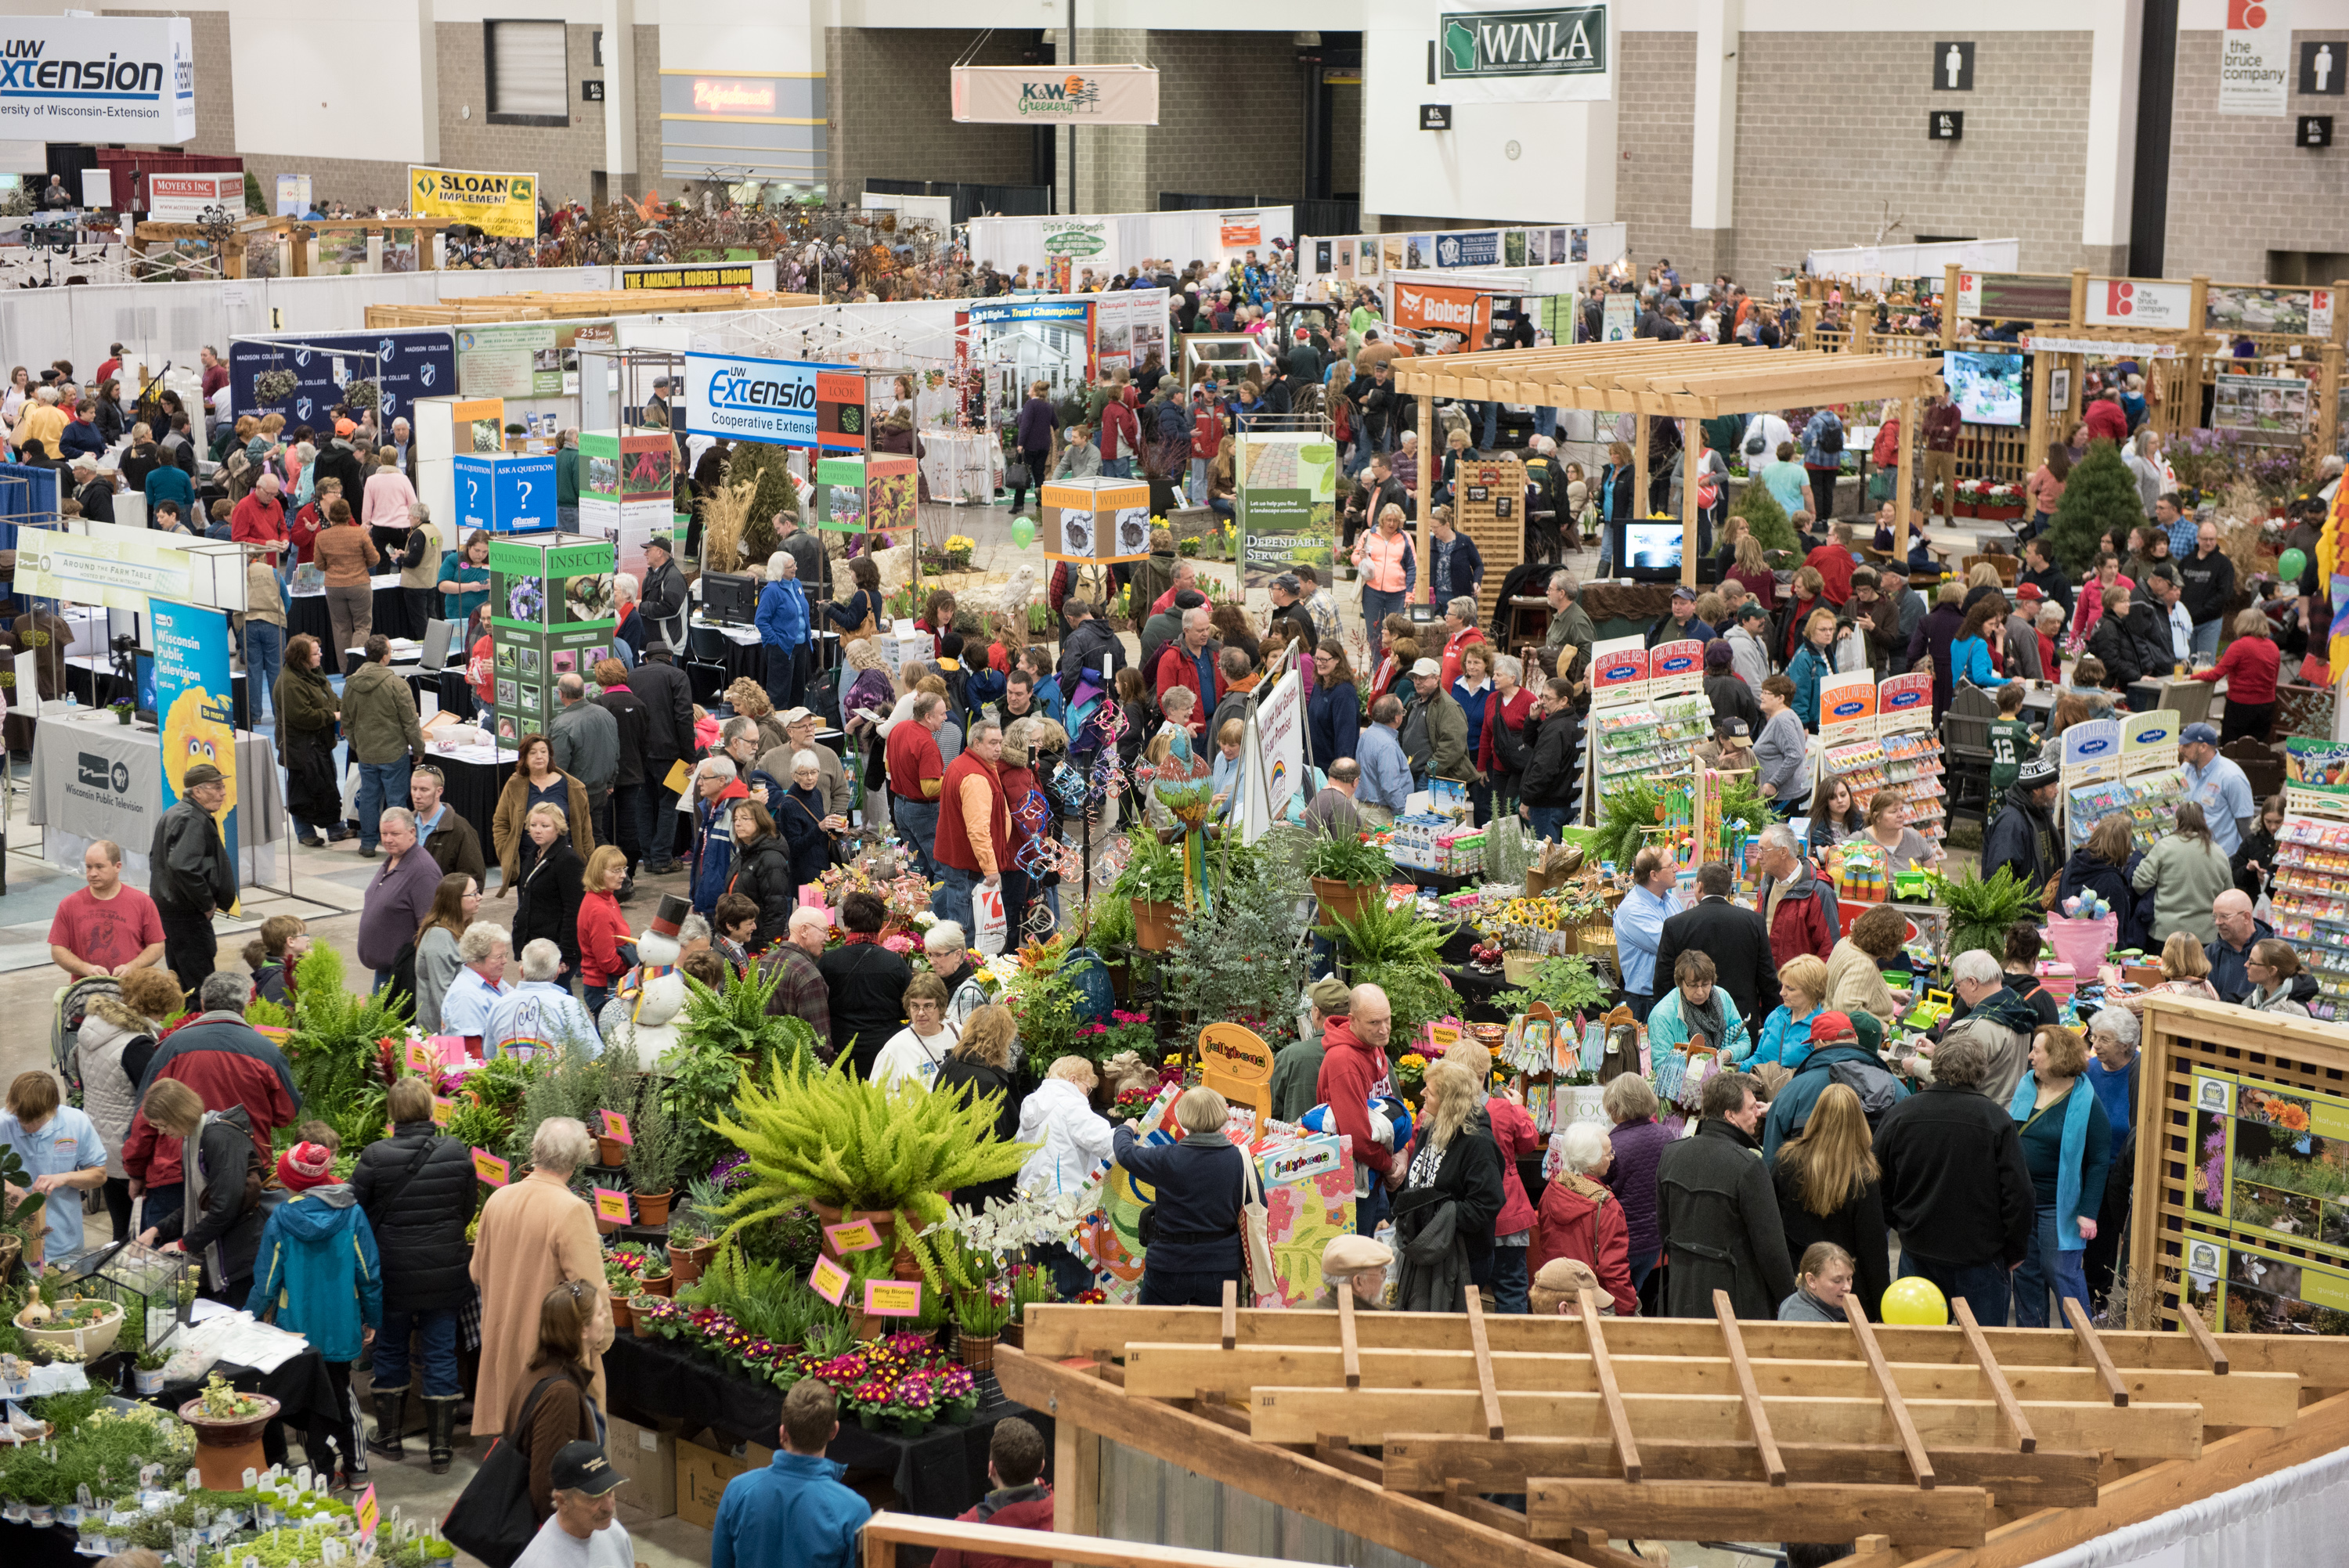 Garden Expo Is A Three Day Event Designed To Celebrate The Latest Trends In  Gardening, Landscaping And Edibles. The Show Features Hundreds Of Exhibitor  ...